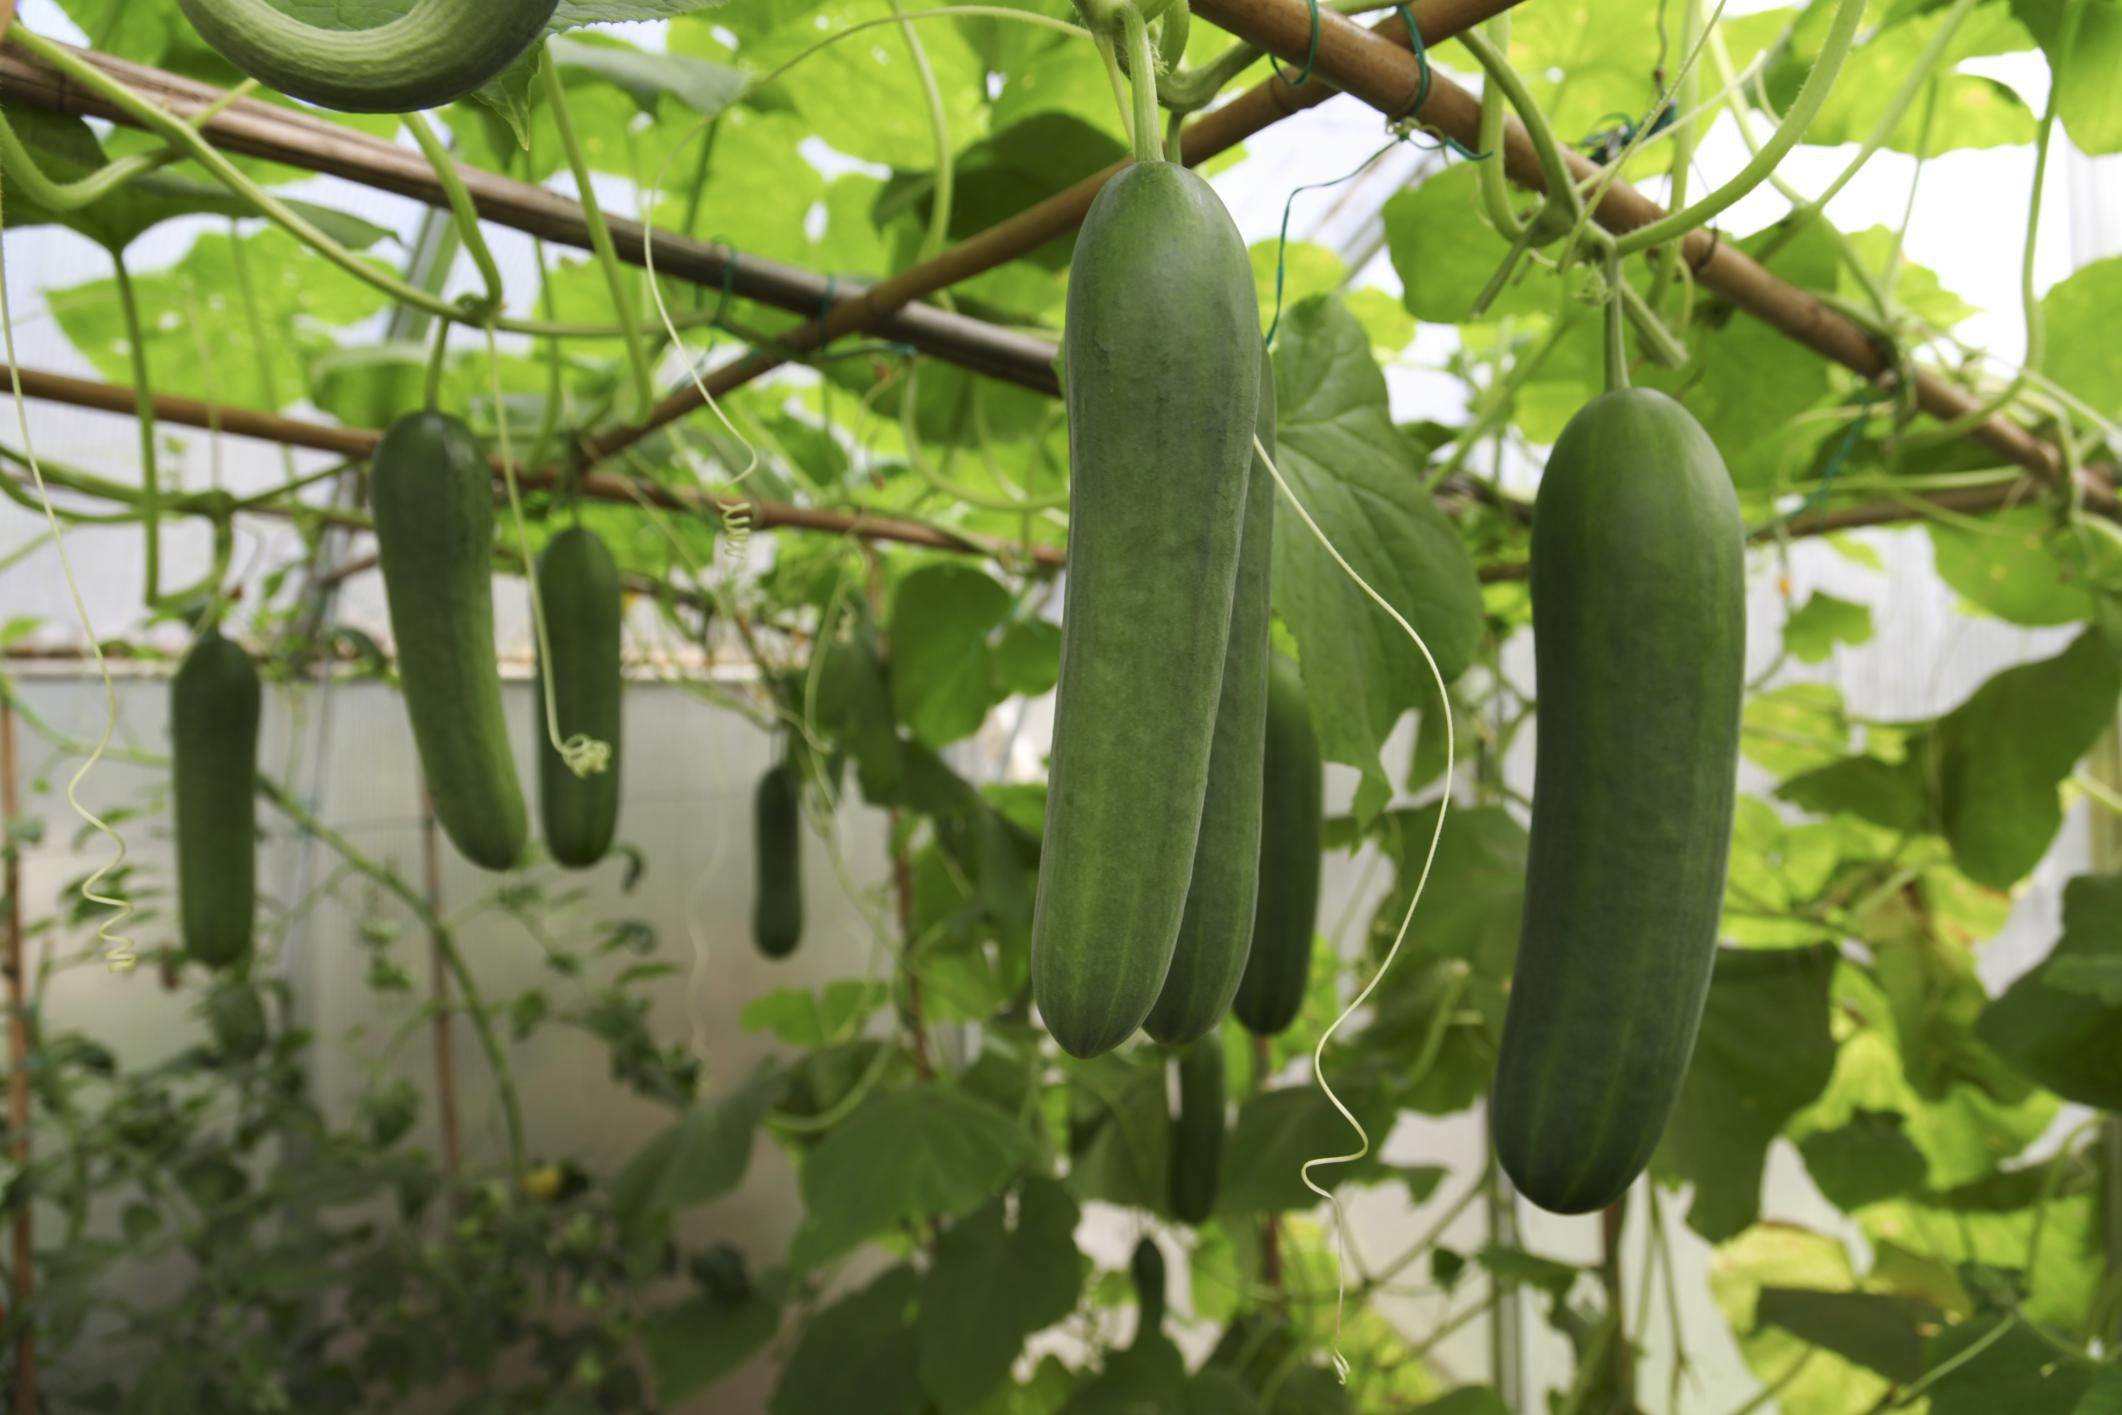 The Best Companion Plants for Cucumbers in the Garden